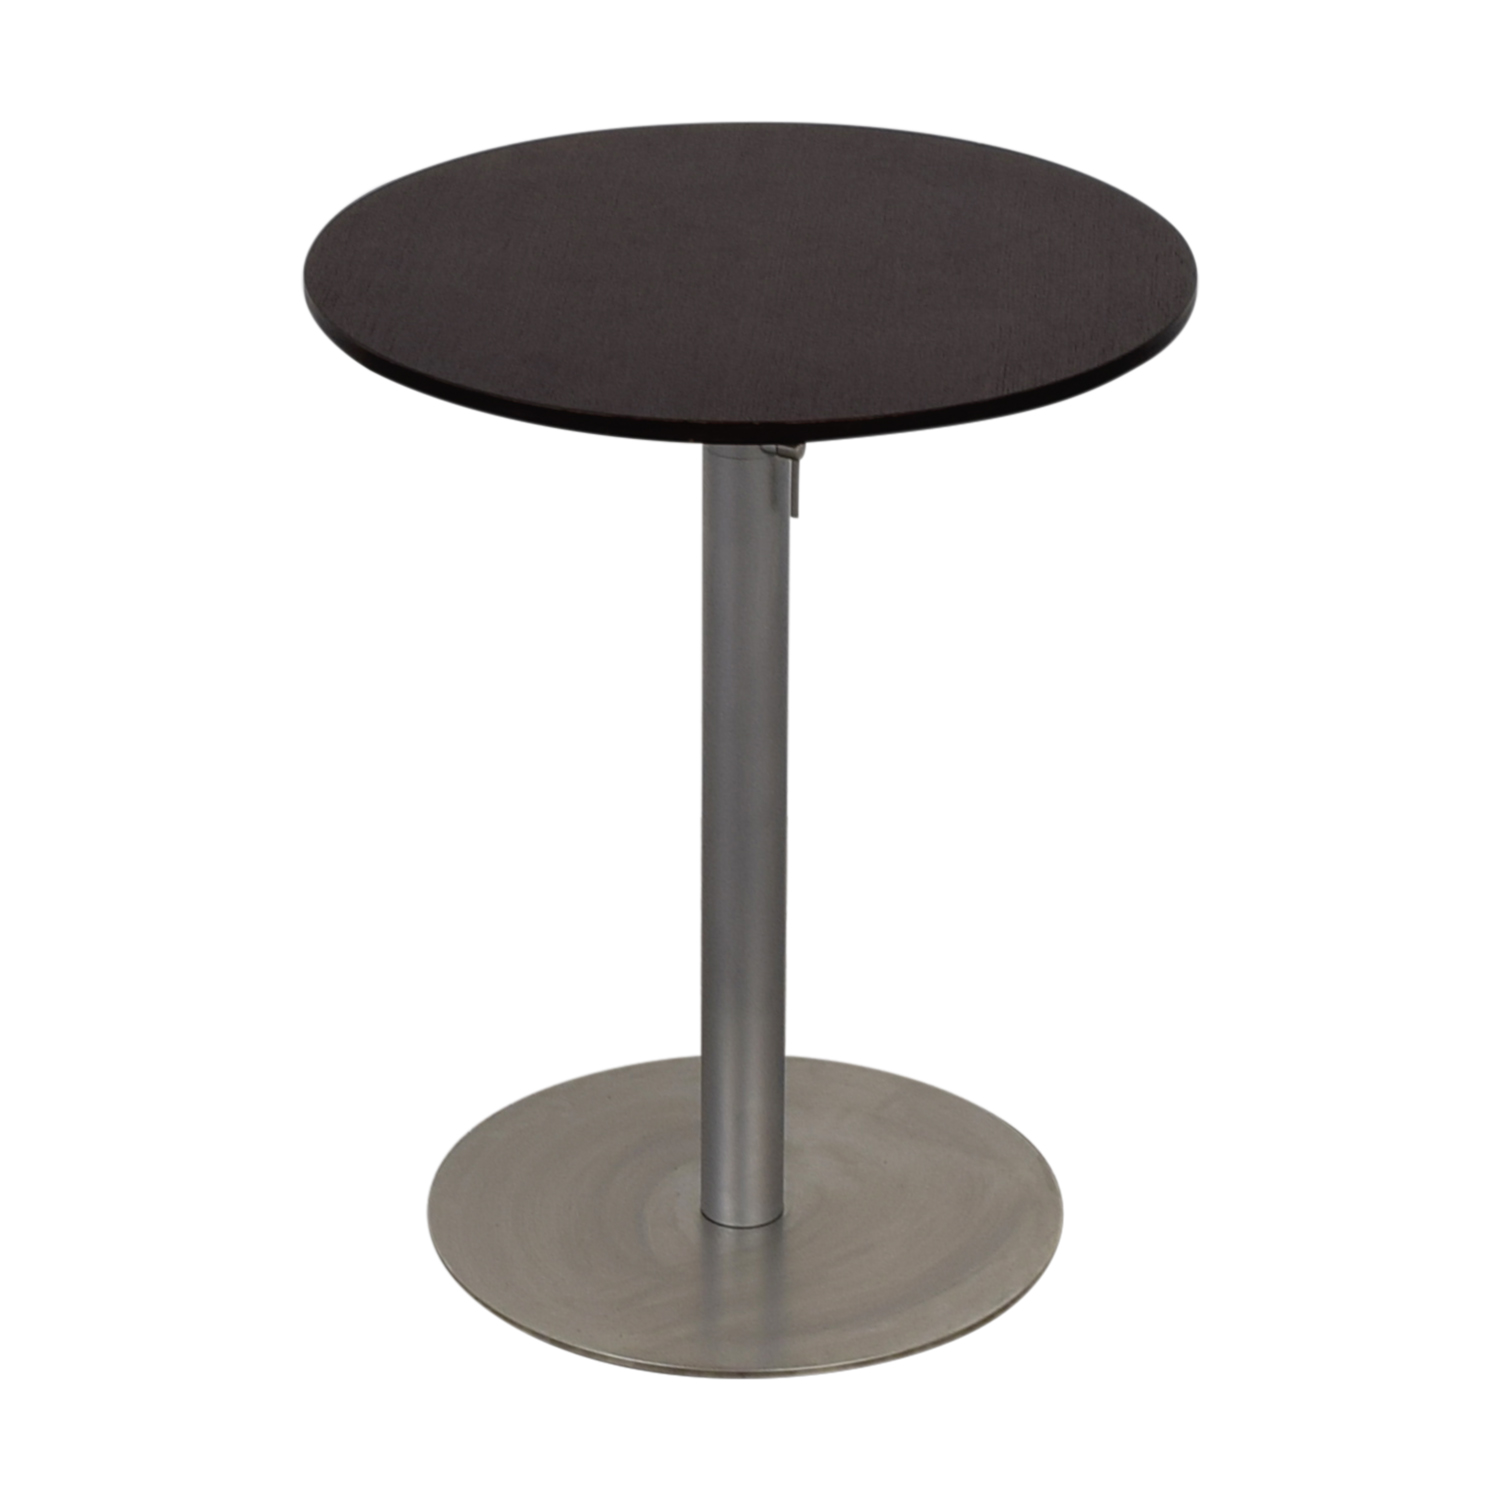 Amtrend Corporation Amtrend Corporation Adjustable High Top Table price